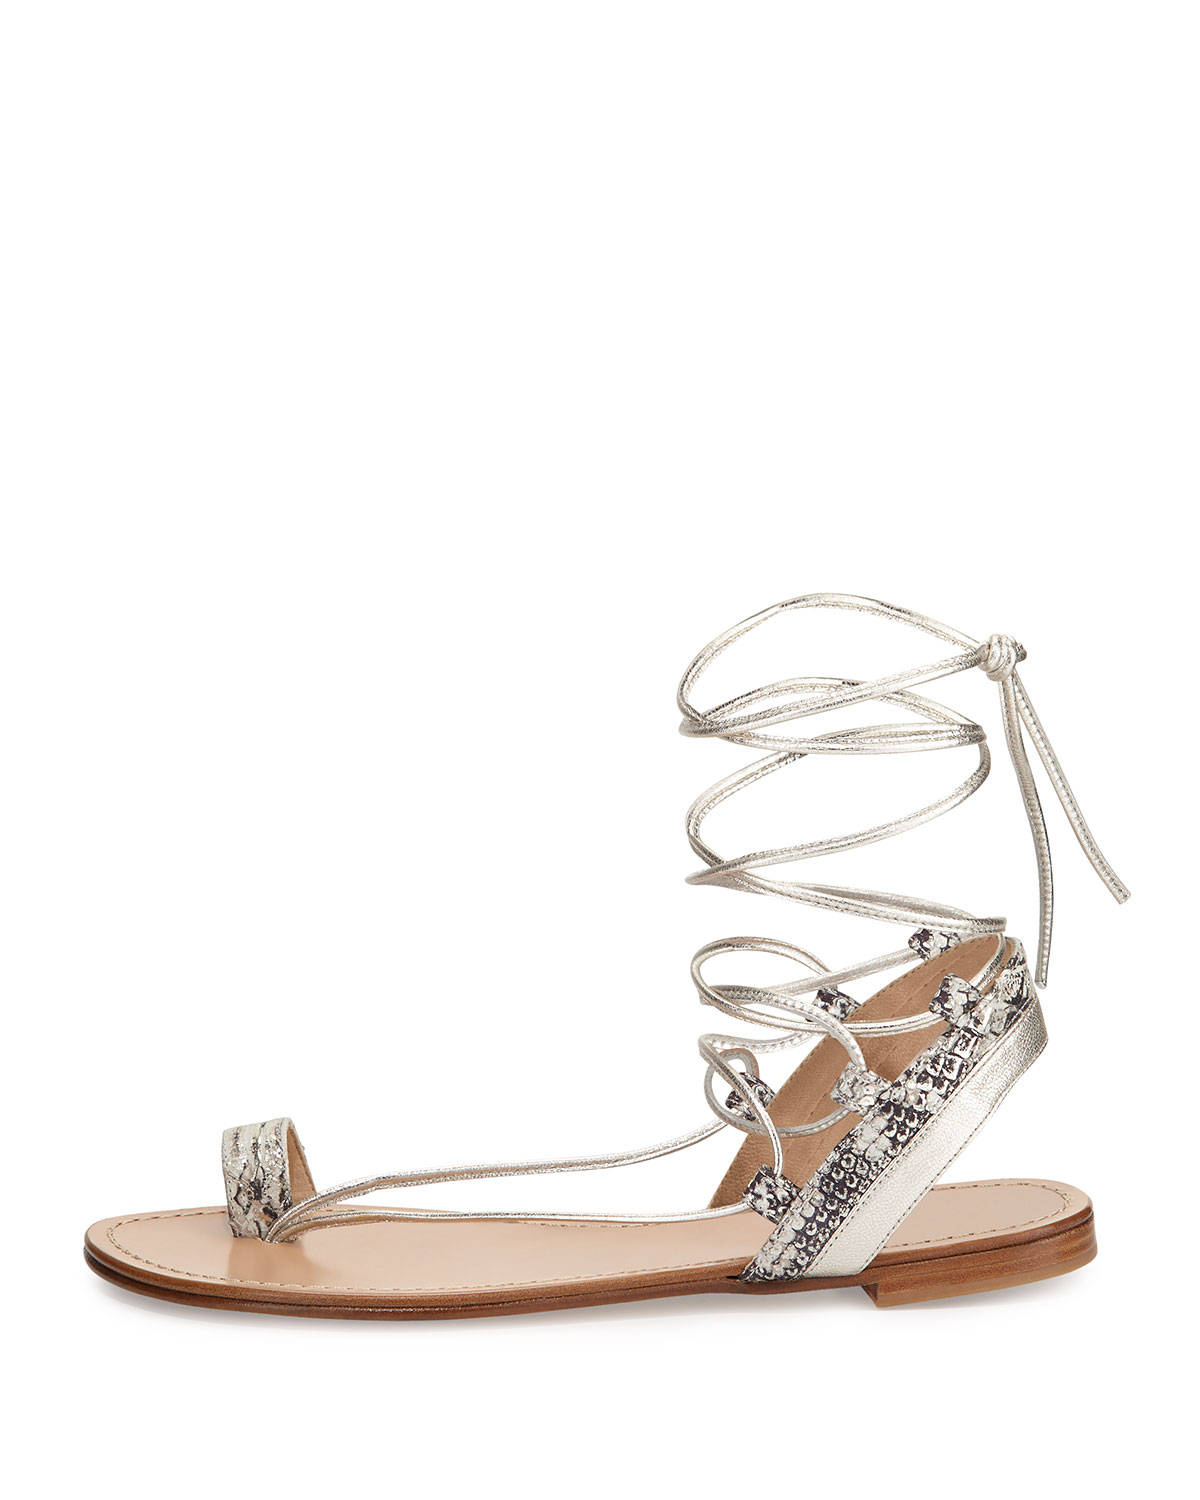 outlet classic buy cheap many kinds of Stuart Weitzman Lasso Lace-Up Sandals 4esoEQlGb2